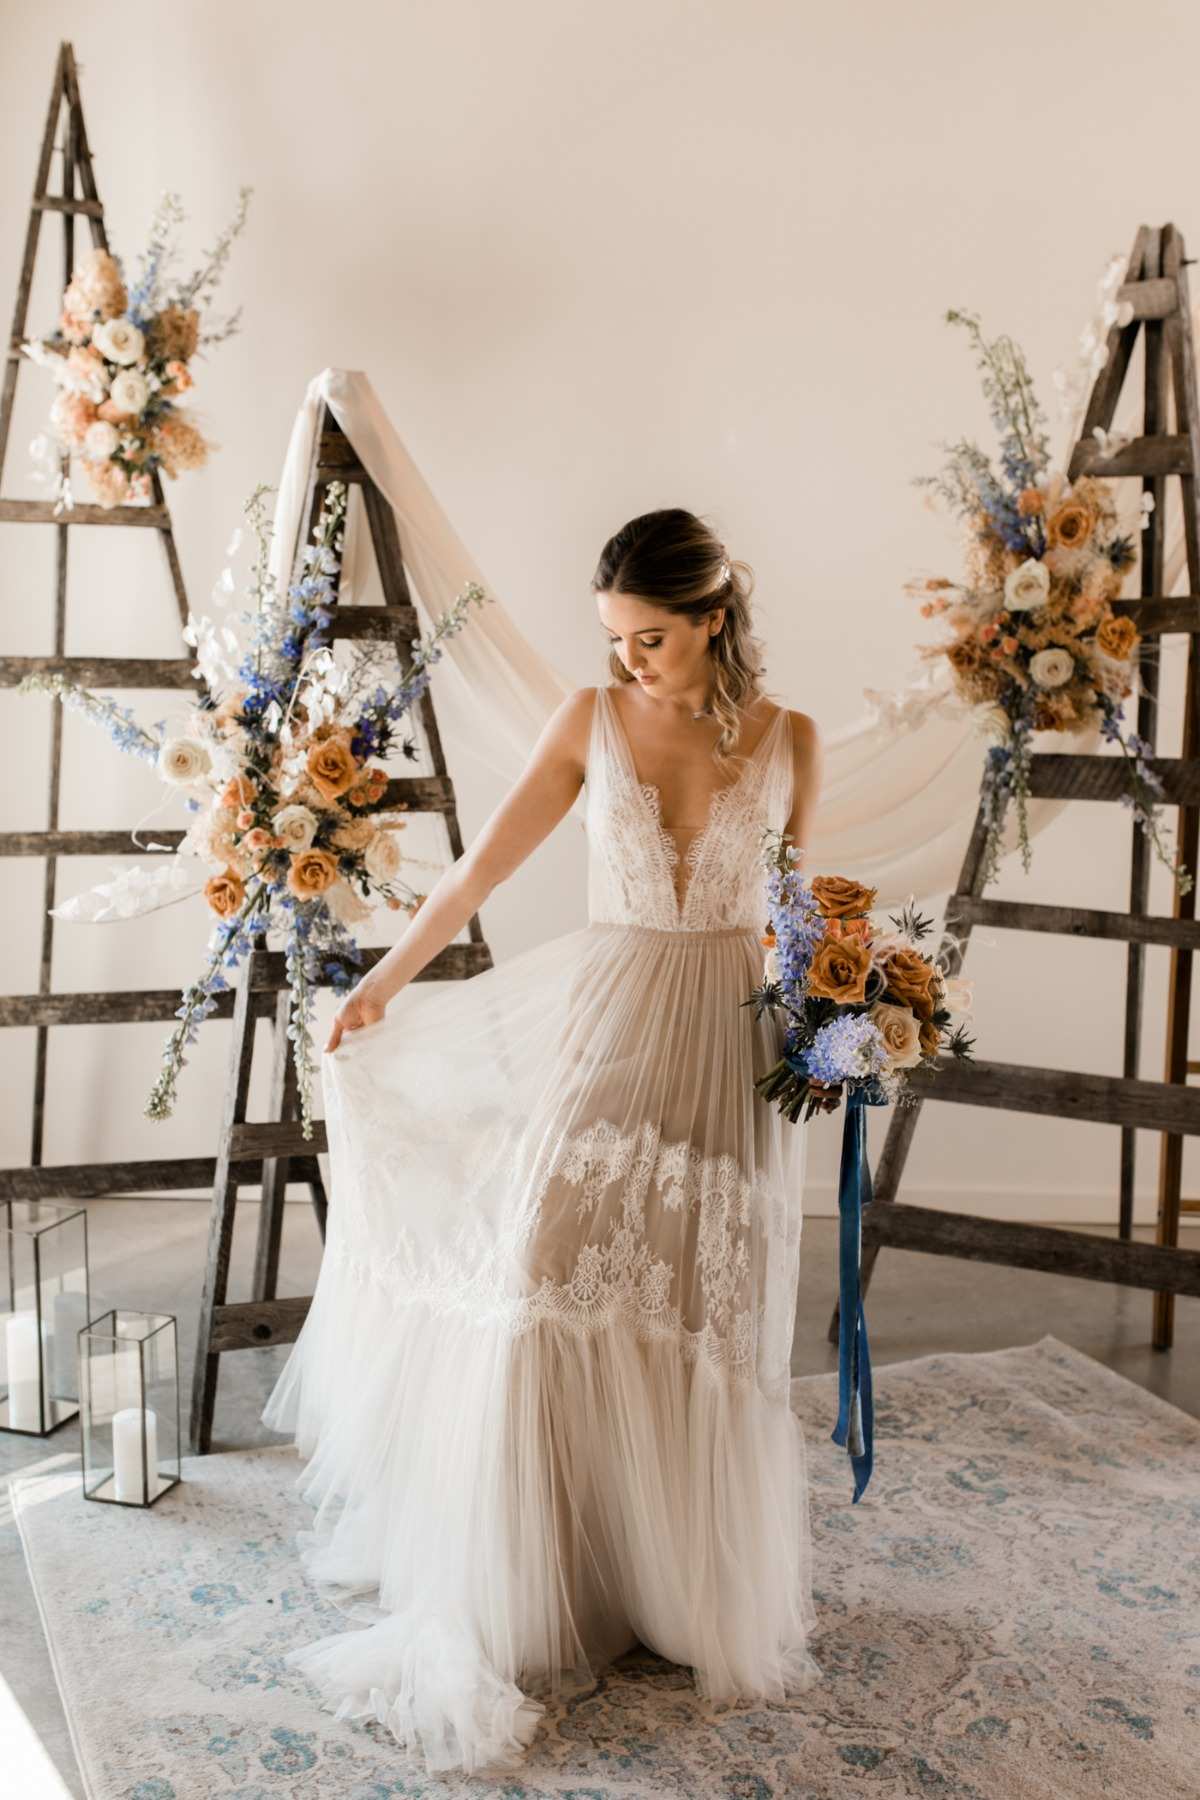 Clementine wedding dress by Willow